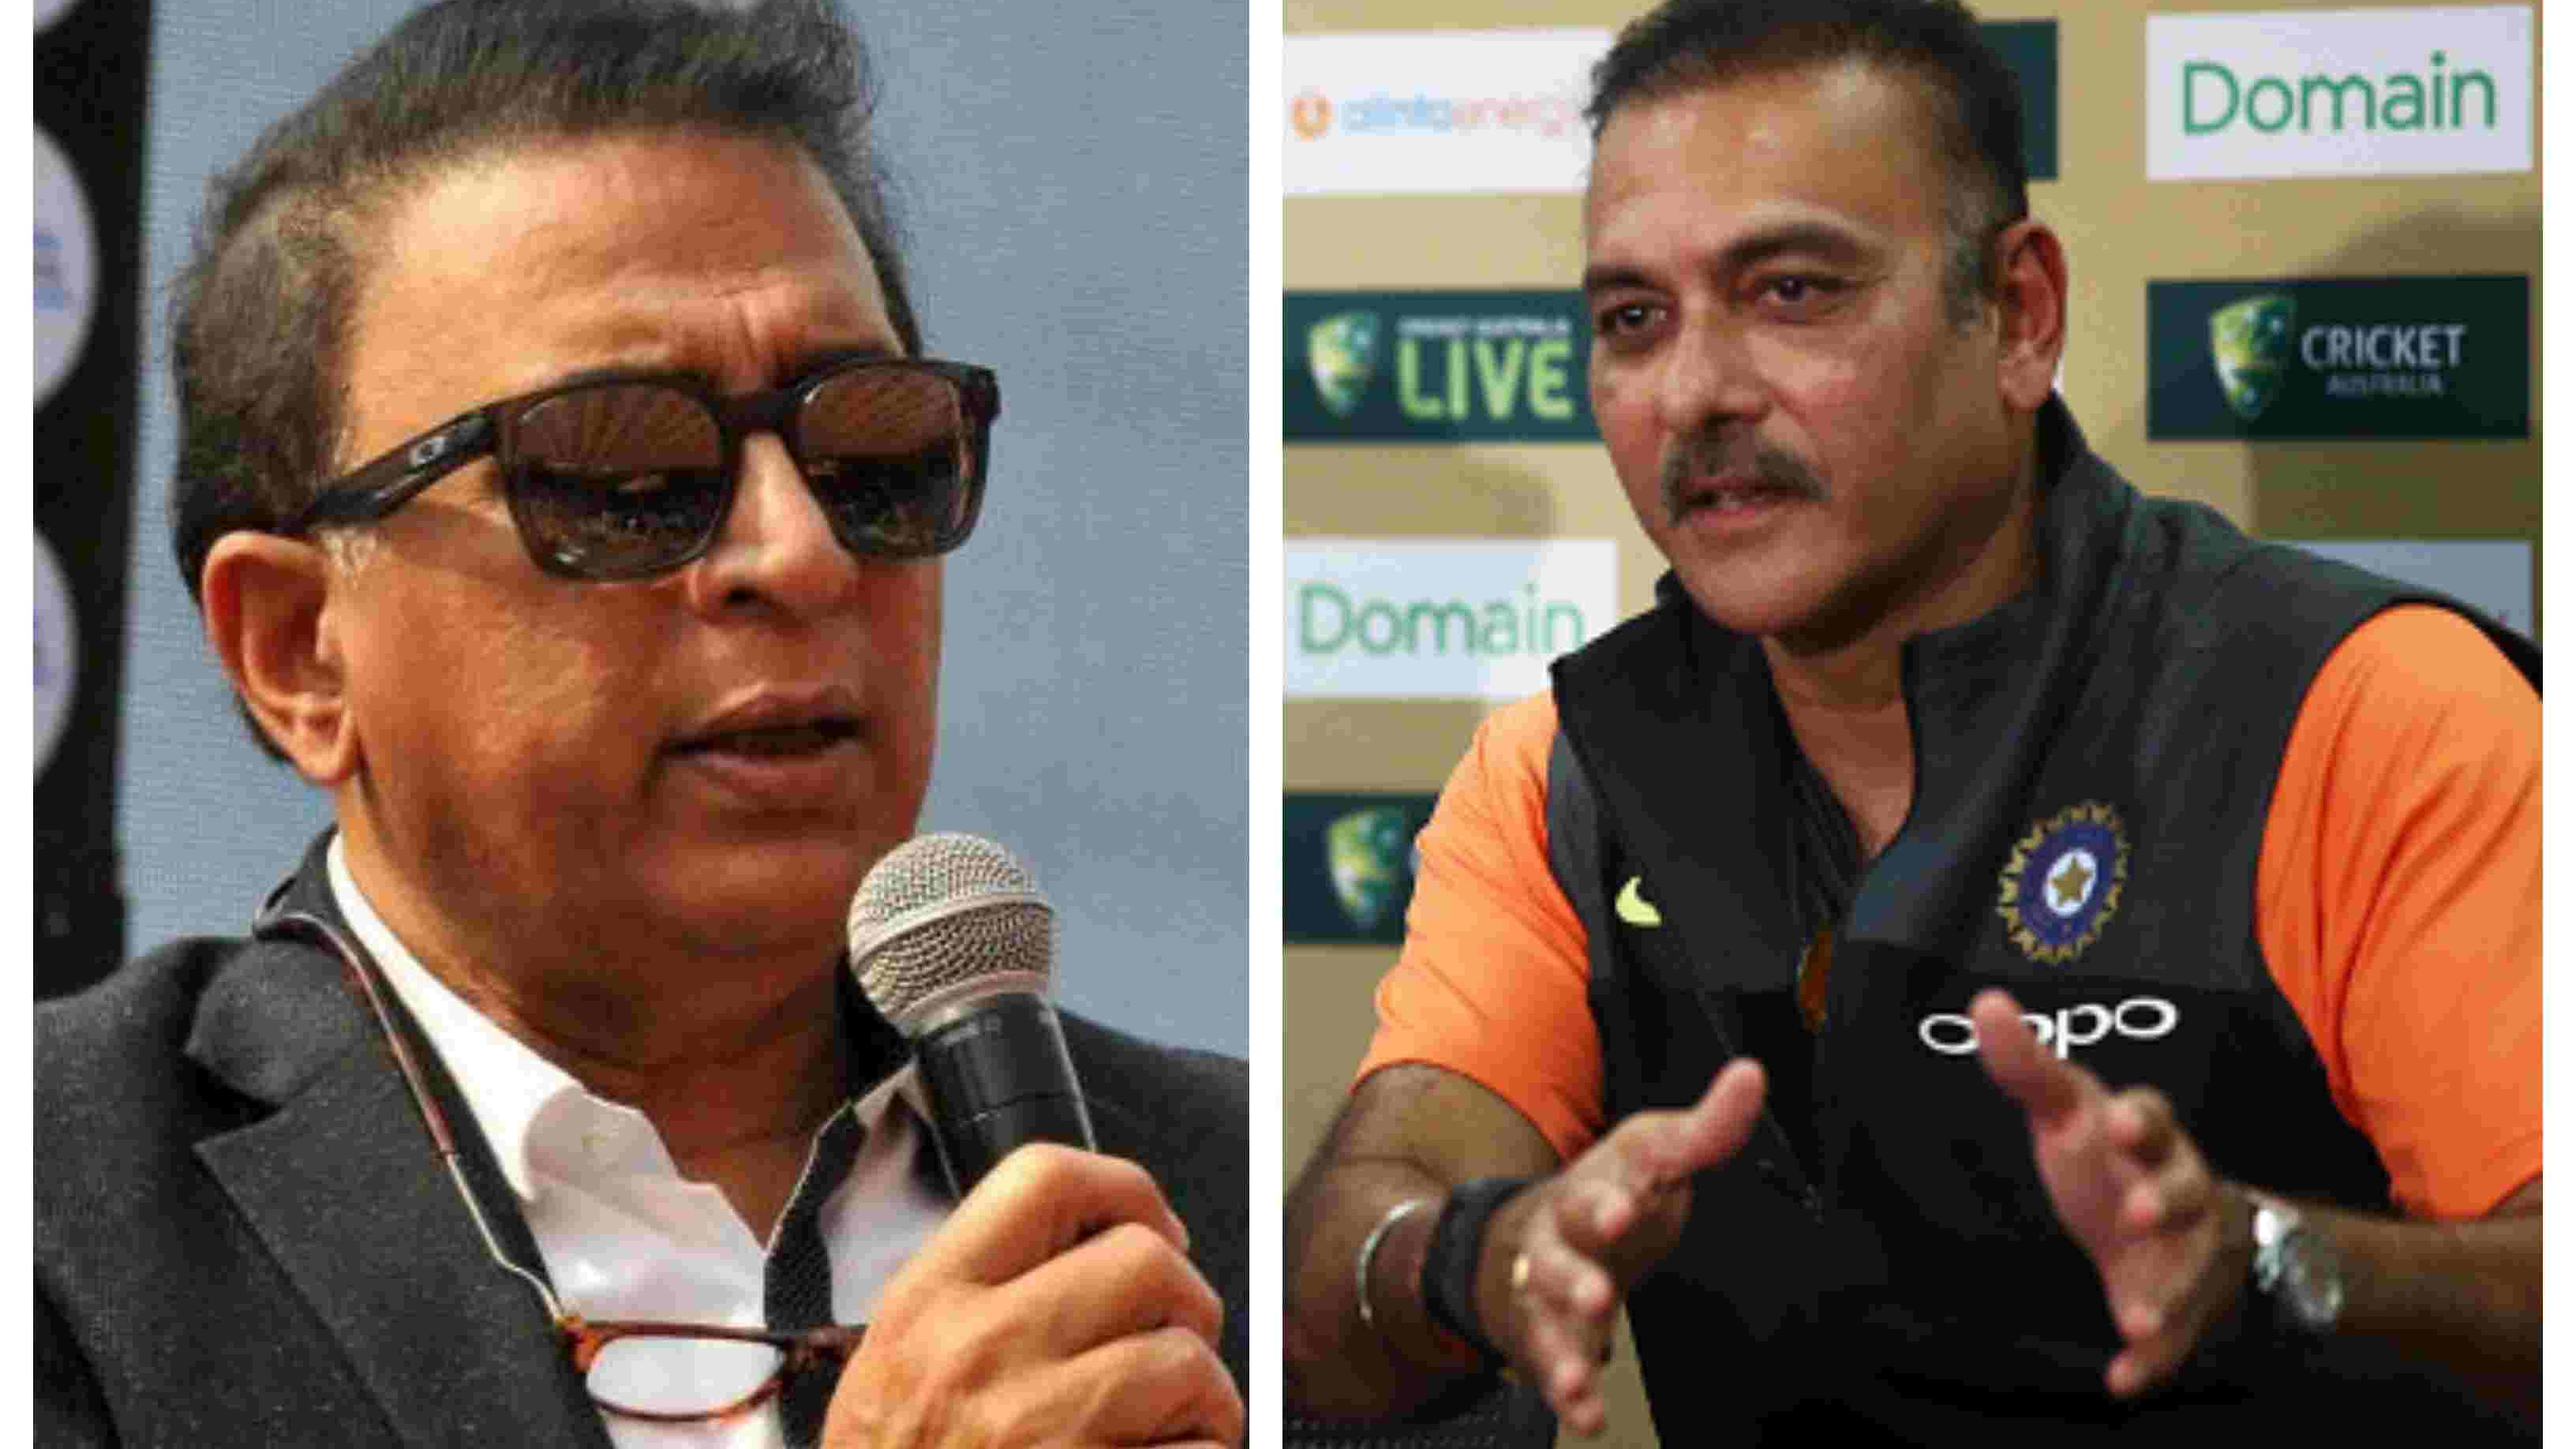 AUS v IND 2018-19: Ravi Shastri takes a jibe at Gavaskar, says current Indian team doesn't fire blanks